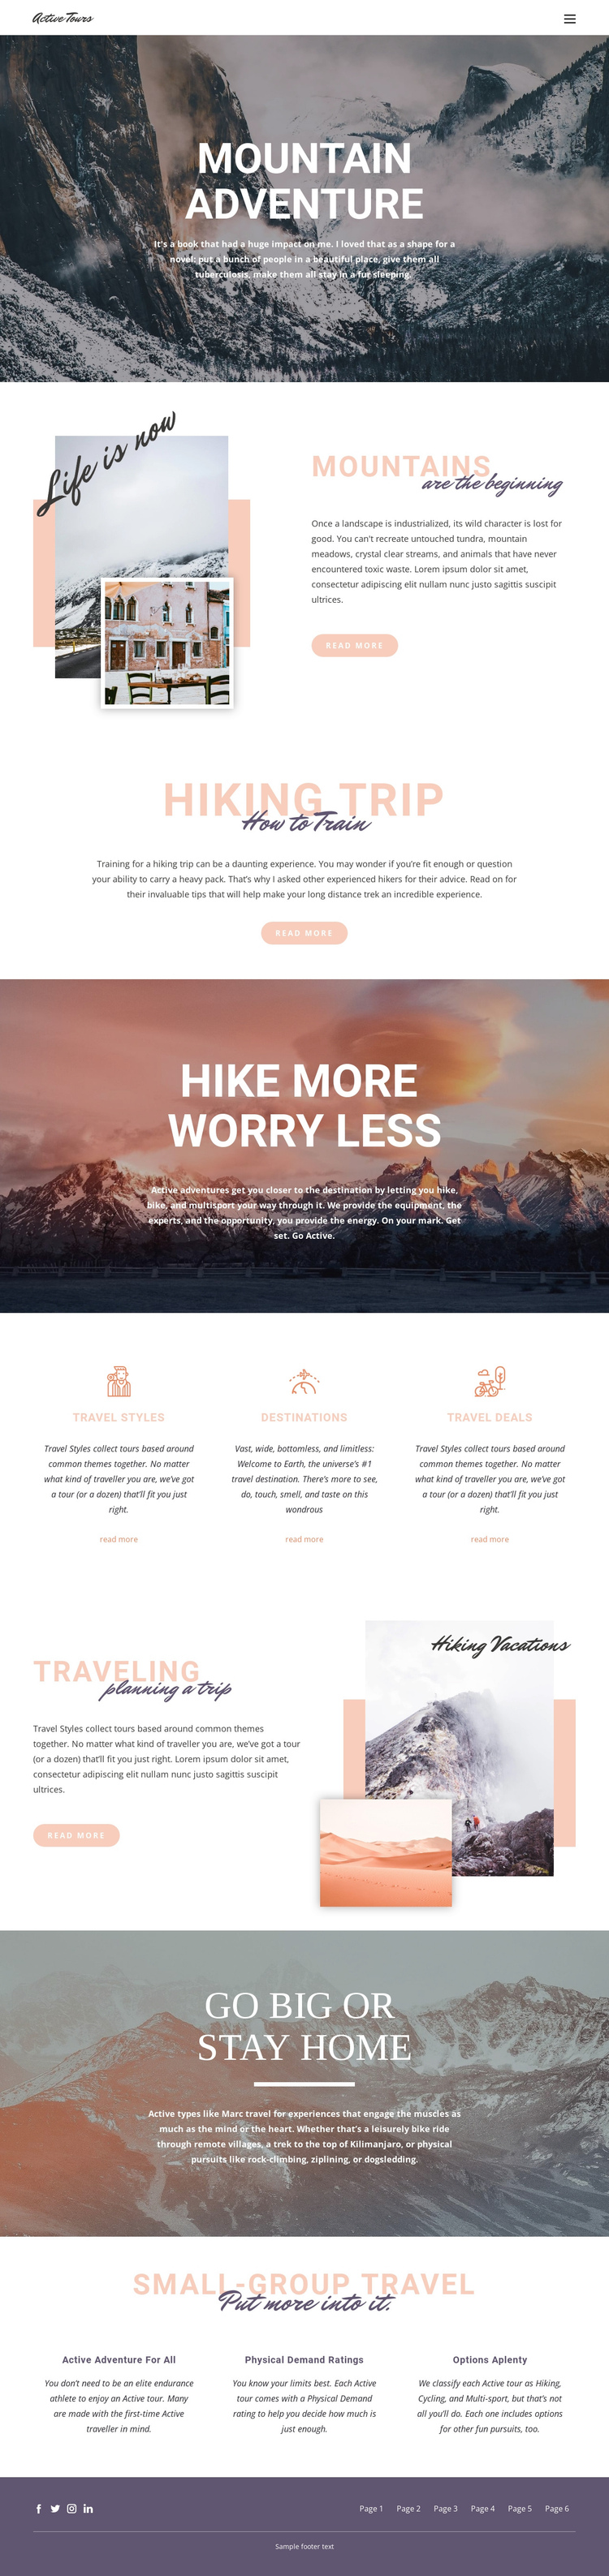 Guided backpacking trips One Page Template